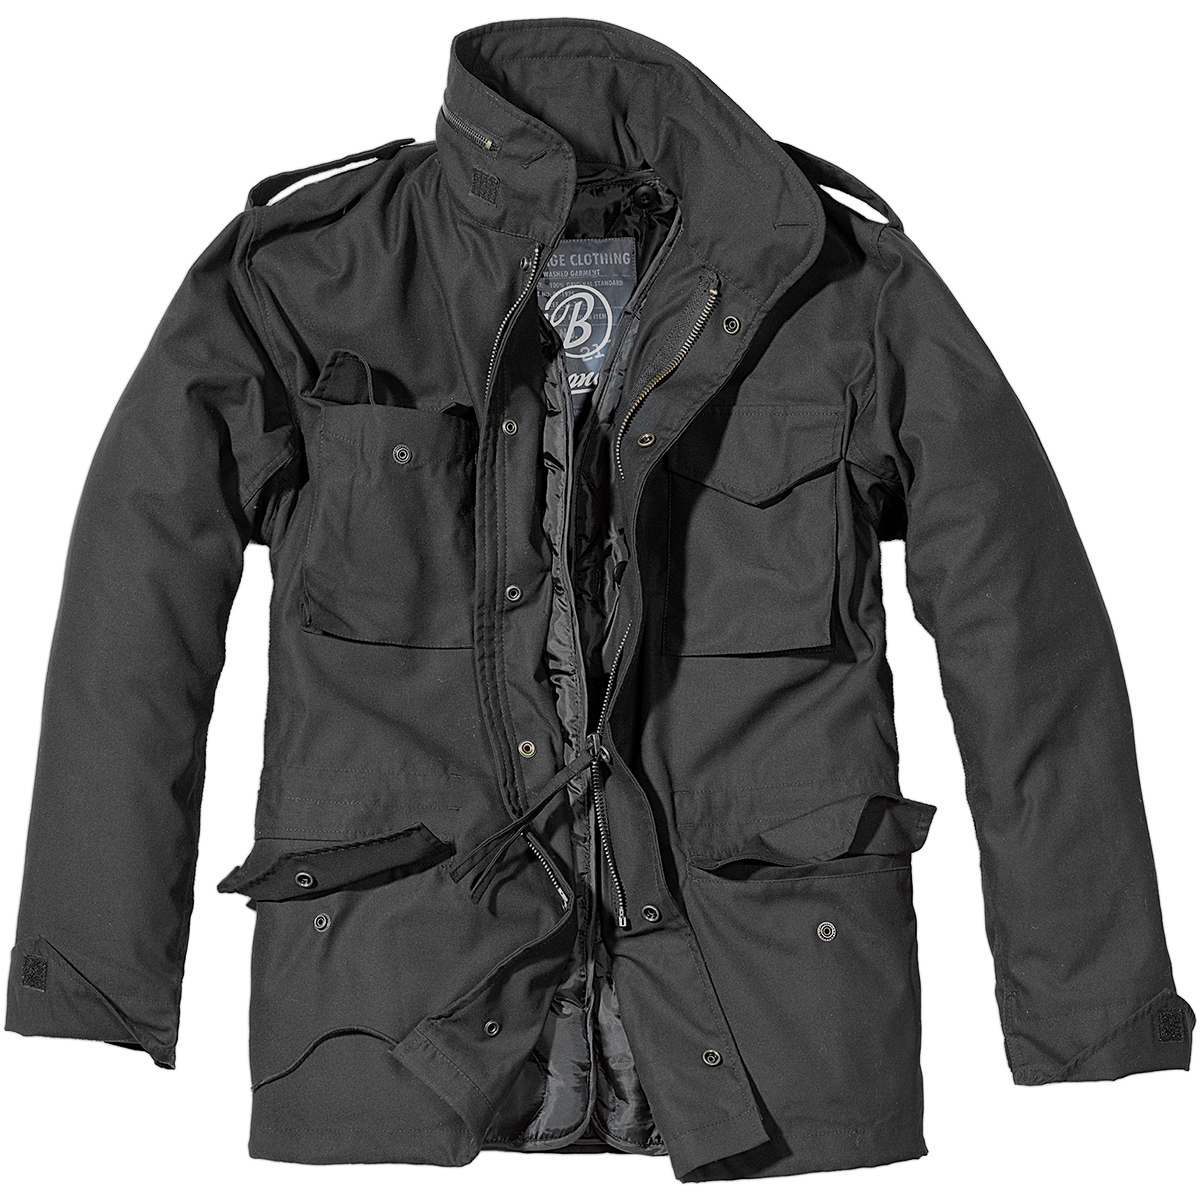 Sentinel Brandit Mens M65 Classic Security Field Jacket Police Coat  Military Parka Black a01638d7c673